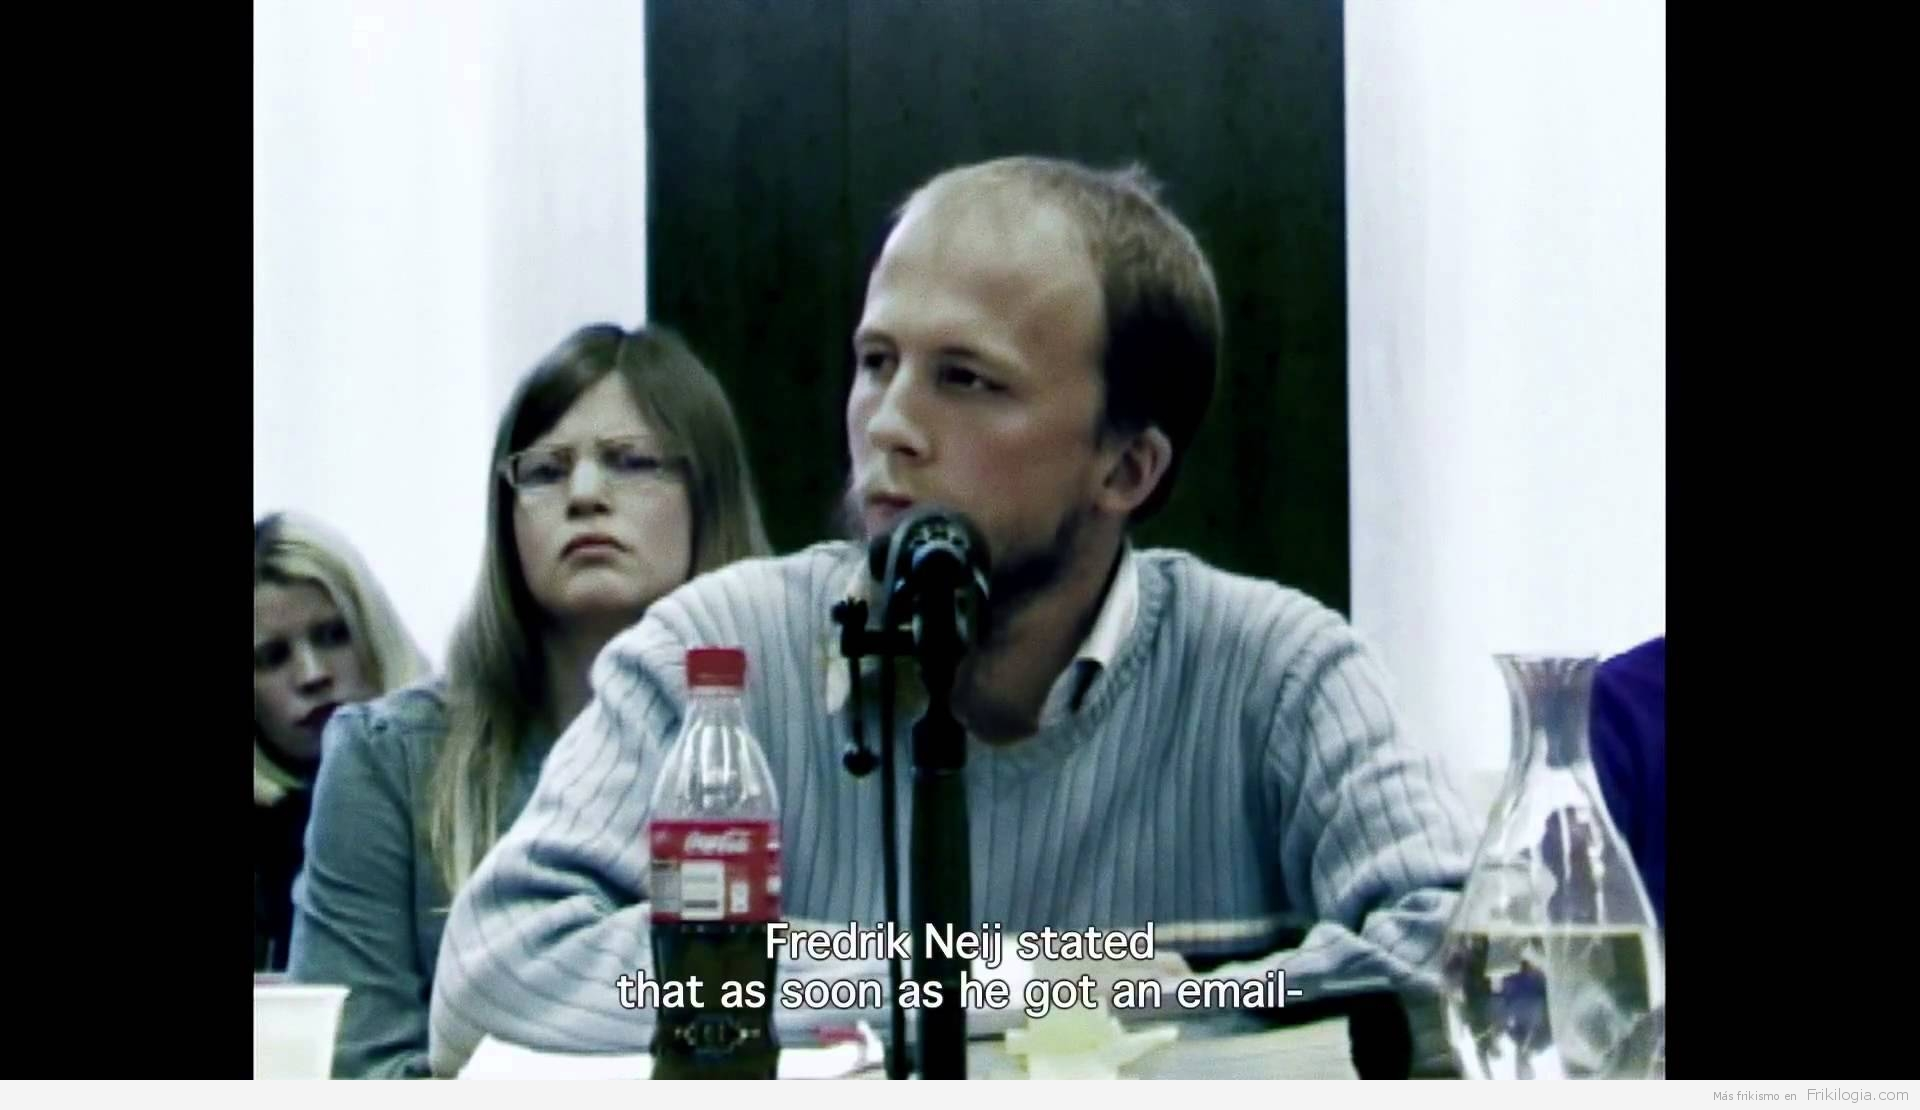 [Documental] TPB AFK : The Pirate Bay Away from keyboard